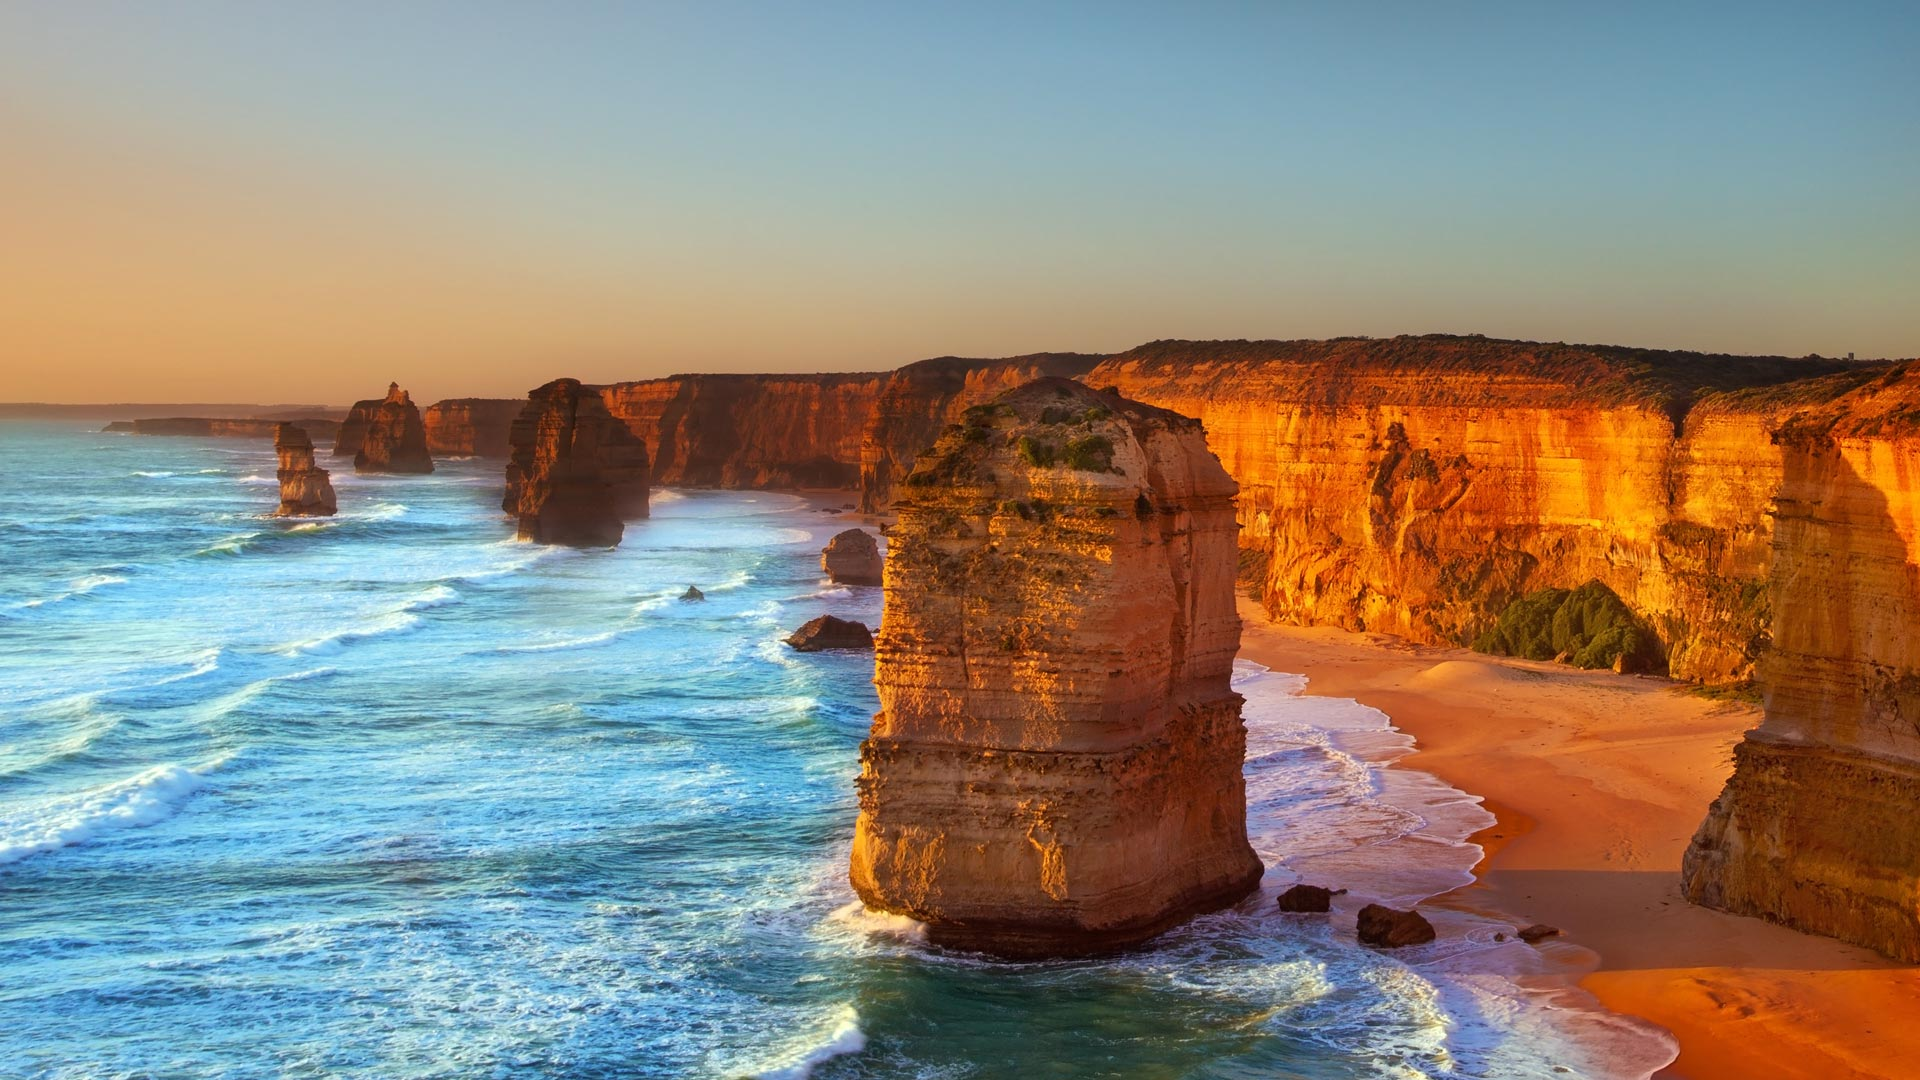 The Twelve Apostles, Port Campbell National Park, Australia (© Marcella Miriello/Shutterstock)